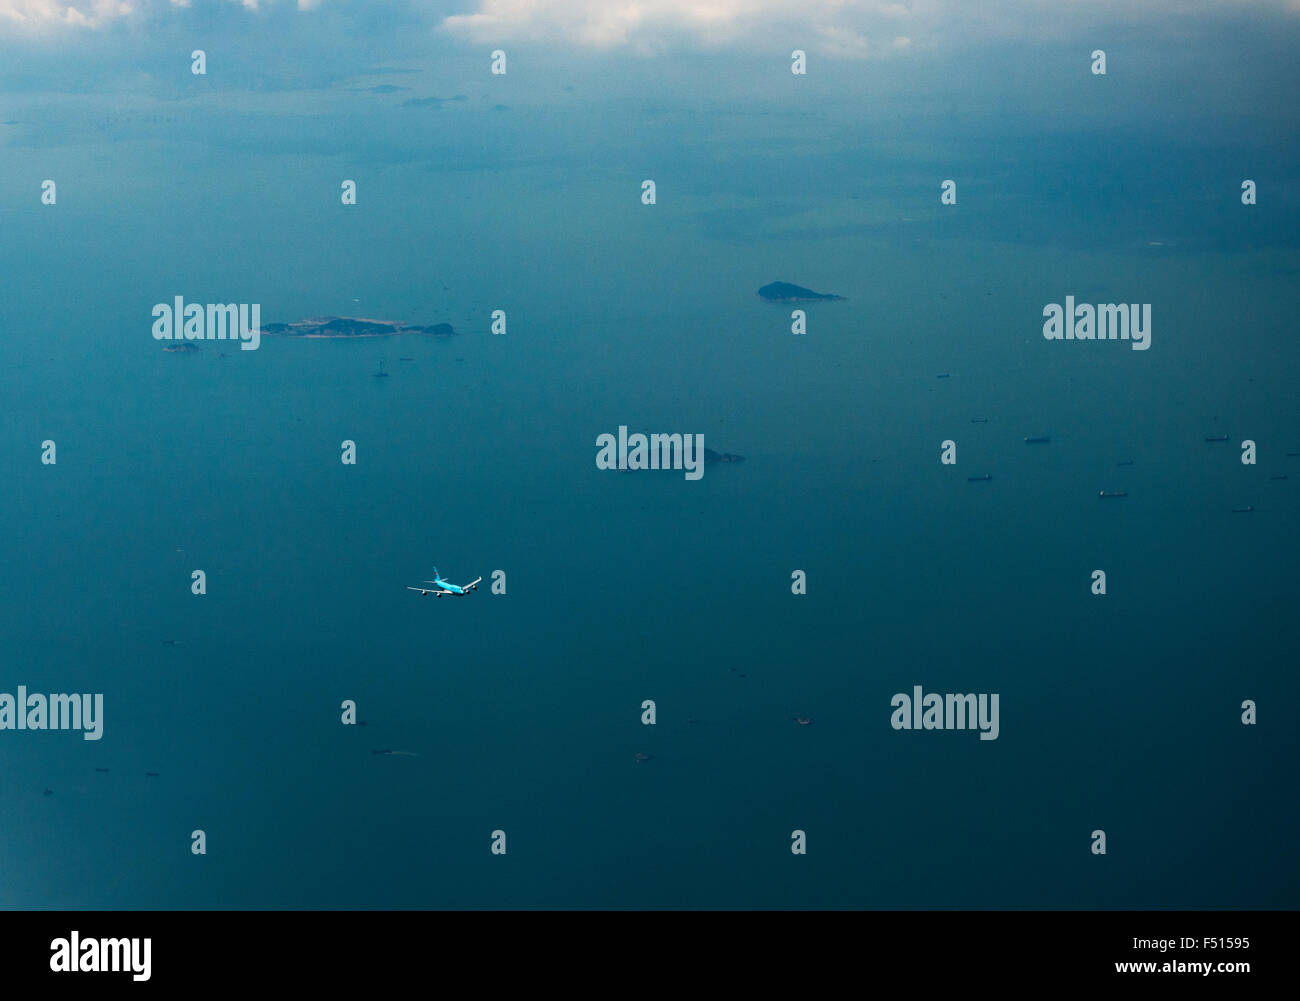 Korean Air flying over the South China Sea. - Stock Image